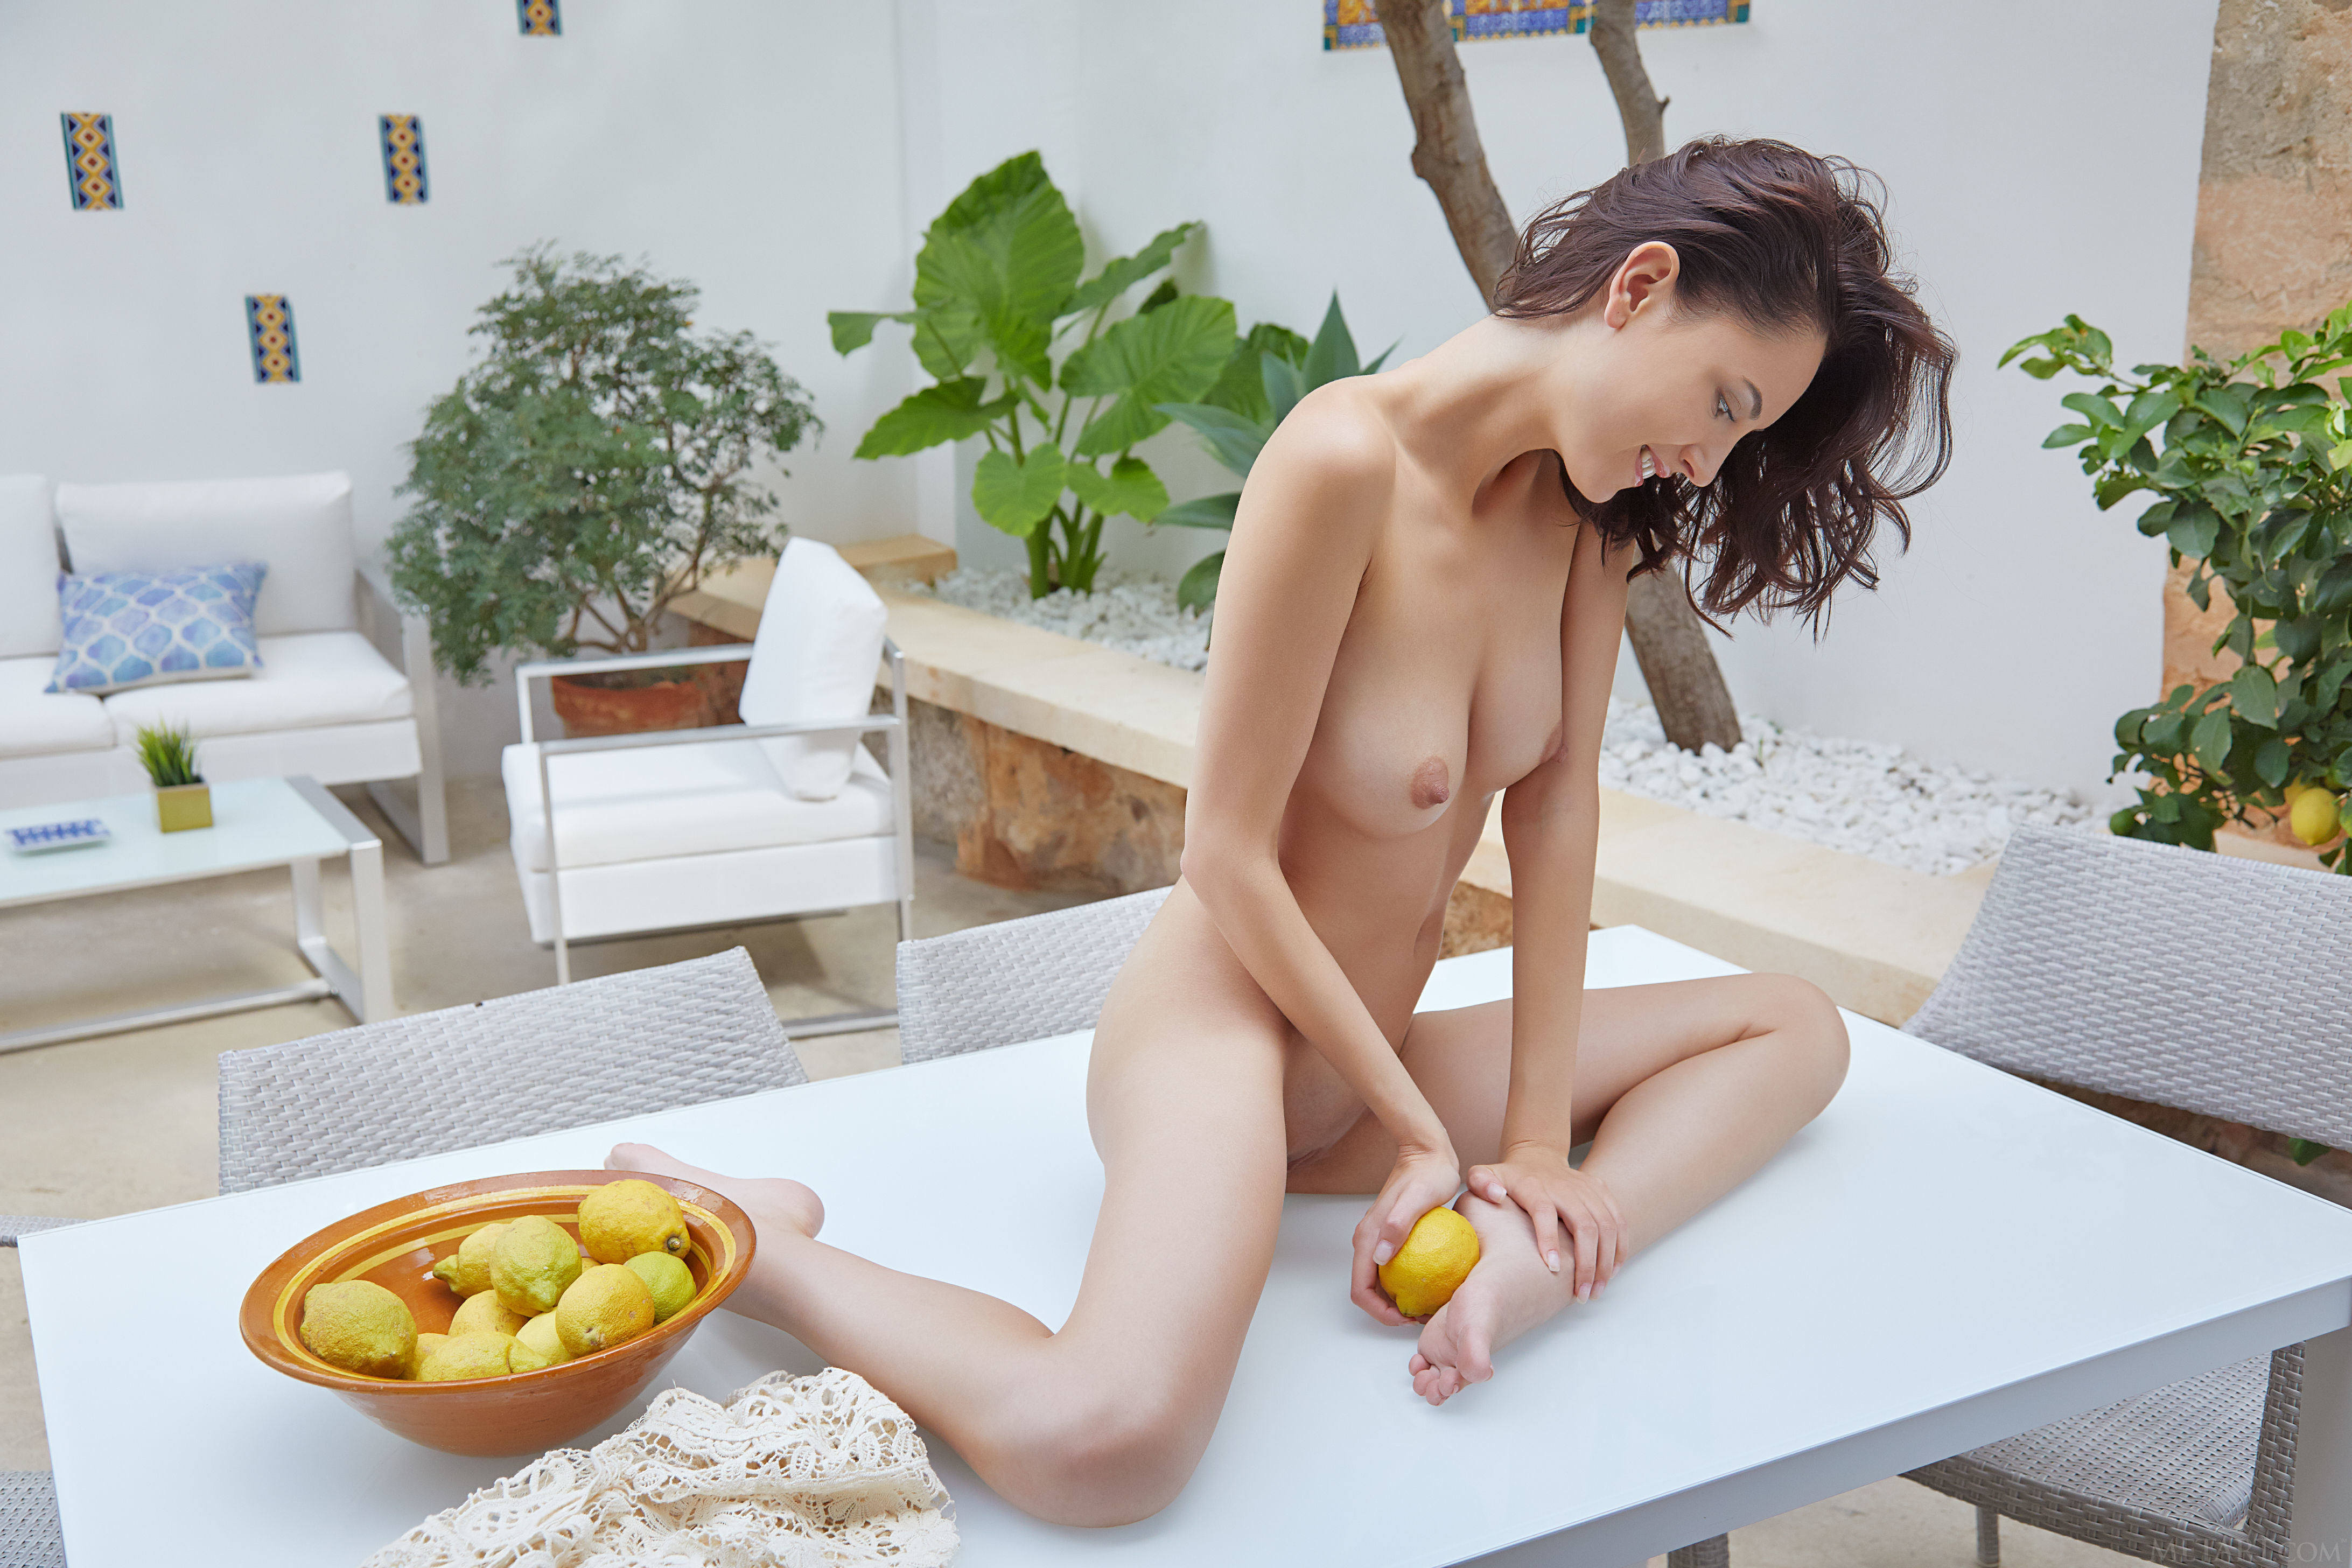 sade-mare-with-open-pussy-3.jpg